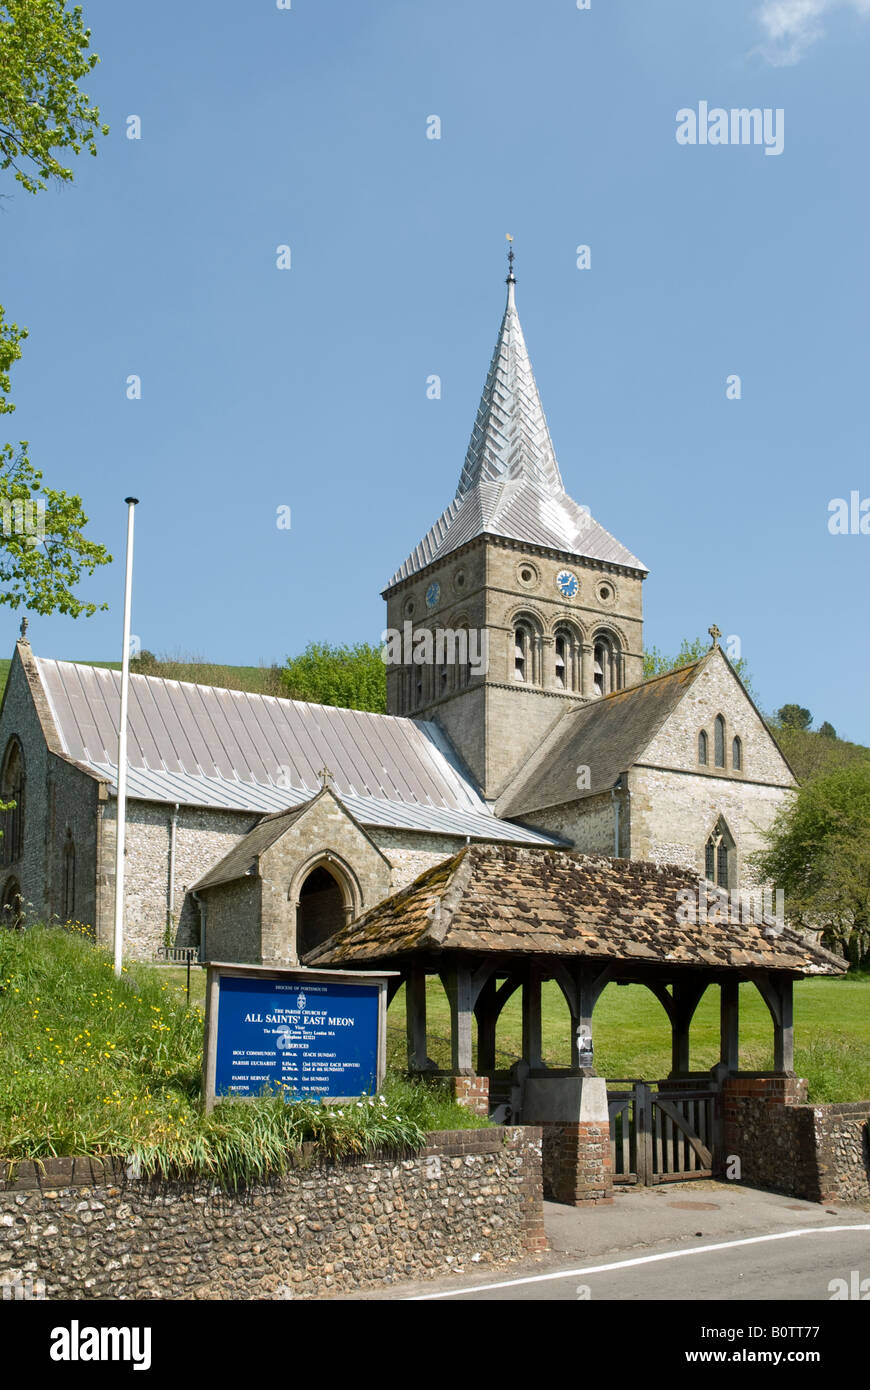 The parish church of All Saints, East Meon, Hampshire in the diocese of Portsmouth - Stock Image